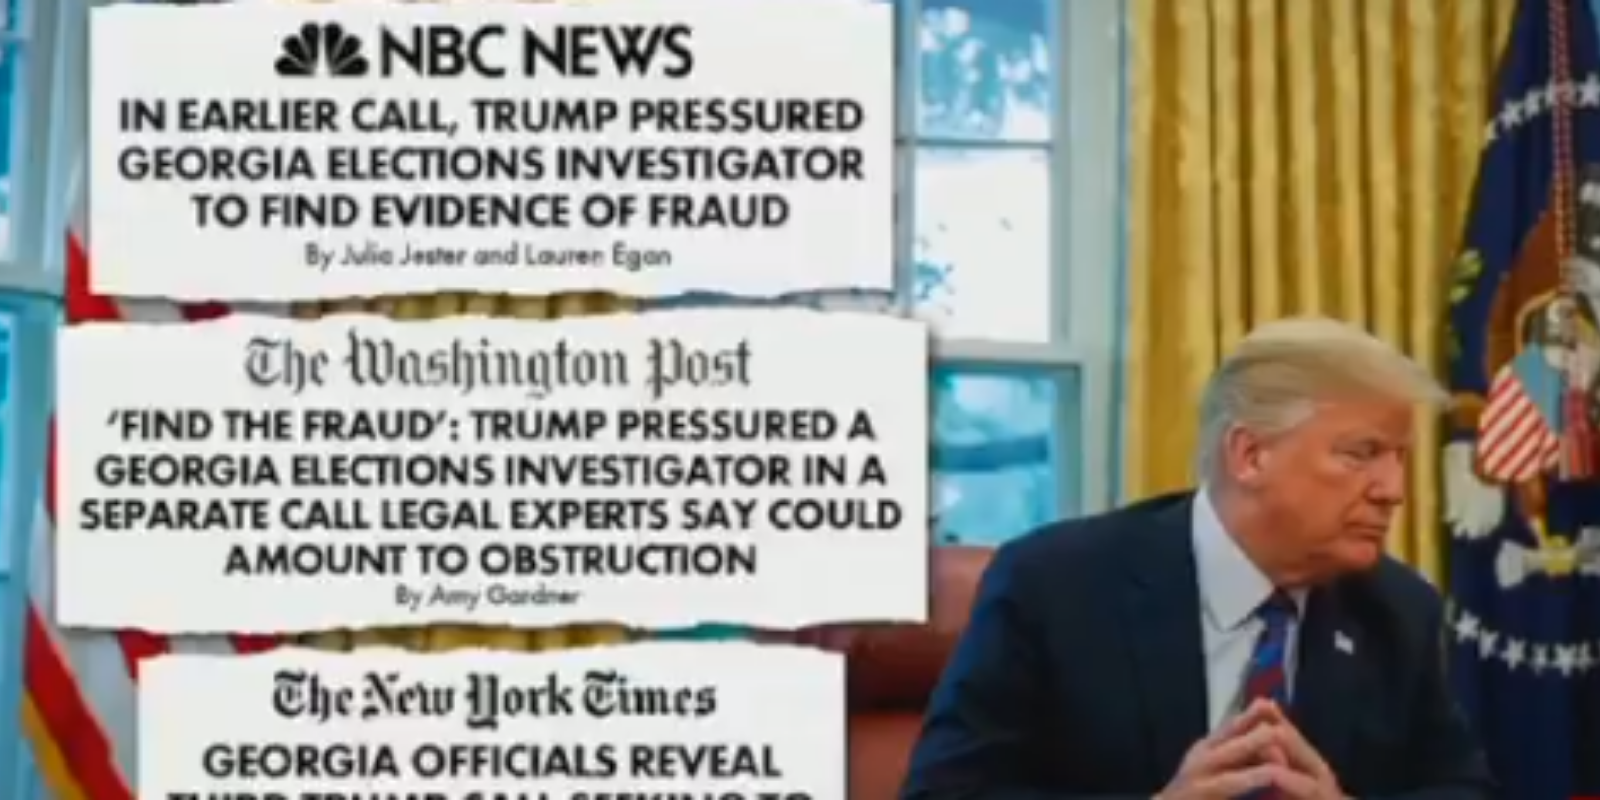 WATCH: Video shows the entire liberal media repeating the 'find the fraud' hoax